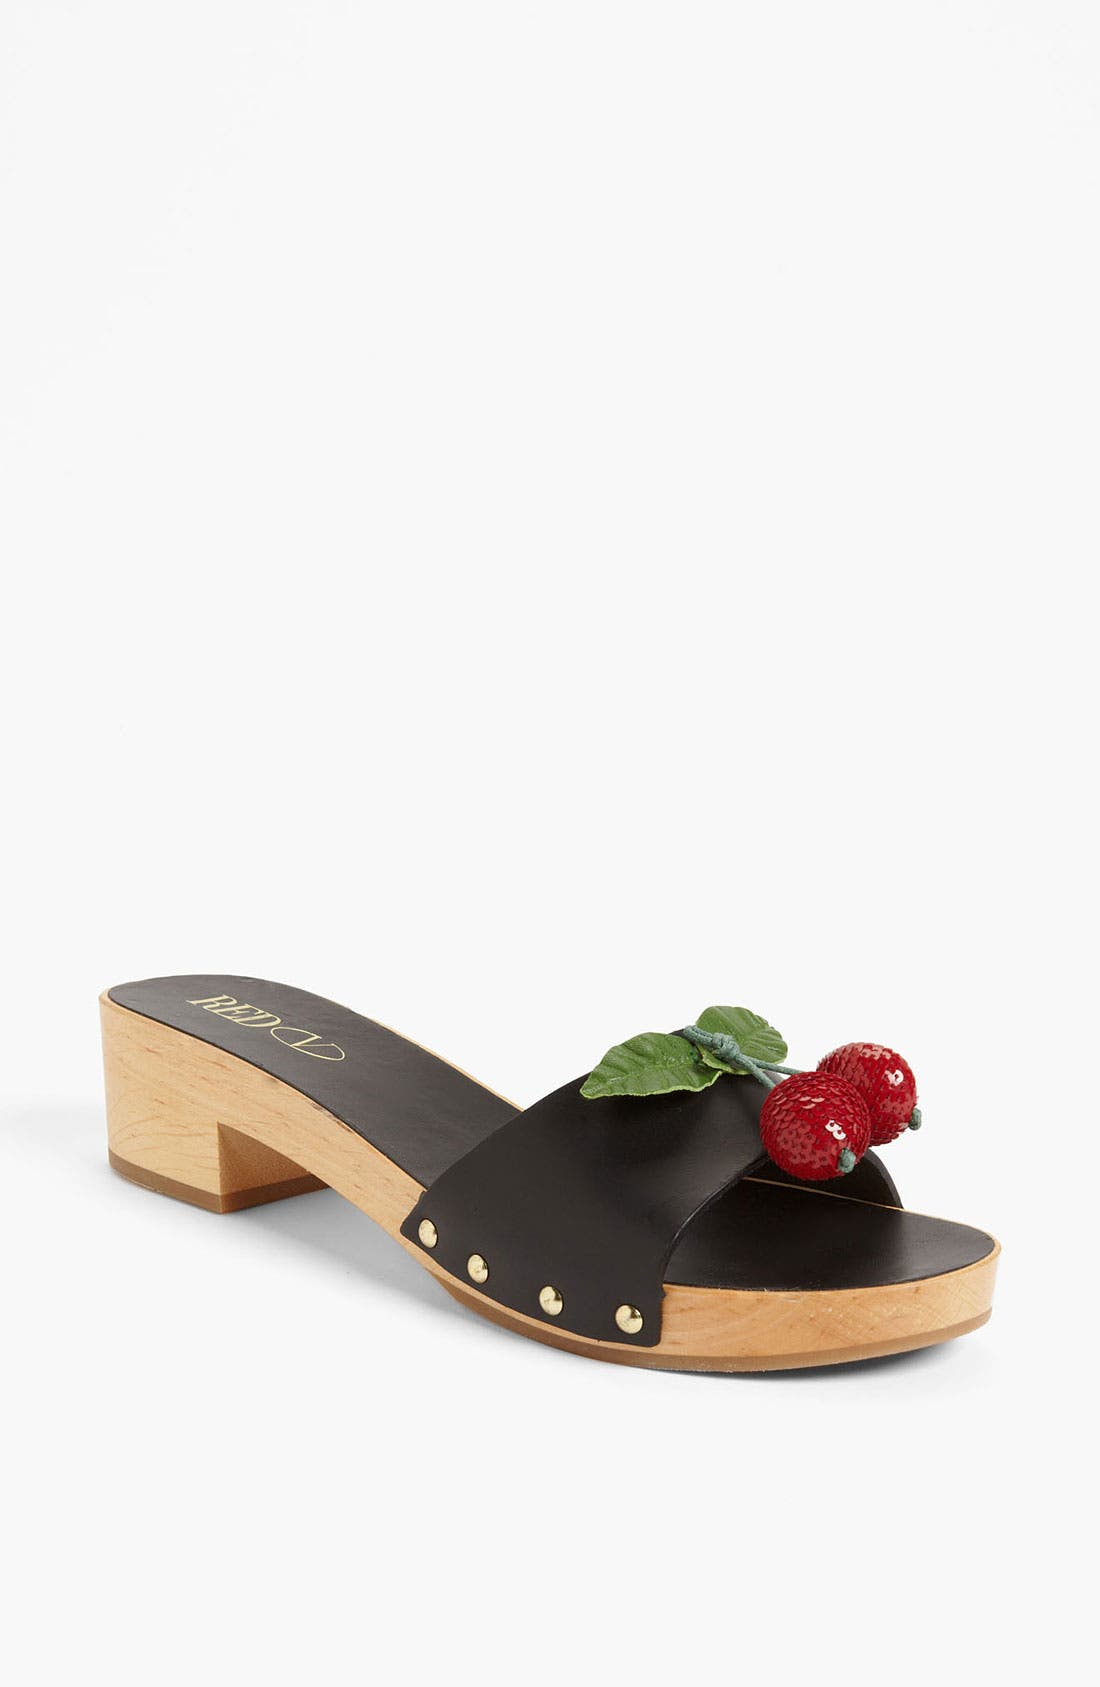 Main Image - RED Valentino 'Cherry' Sandal